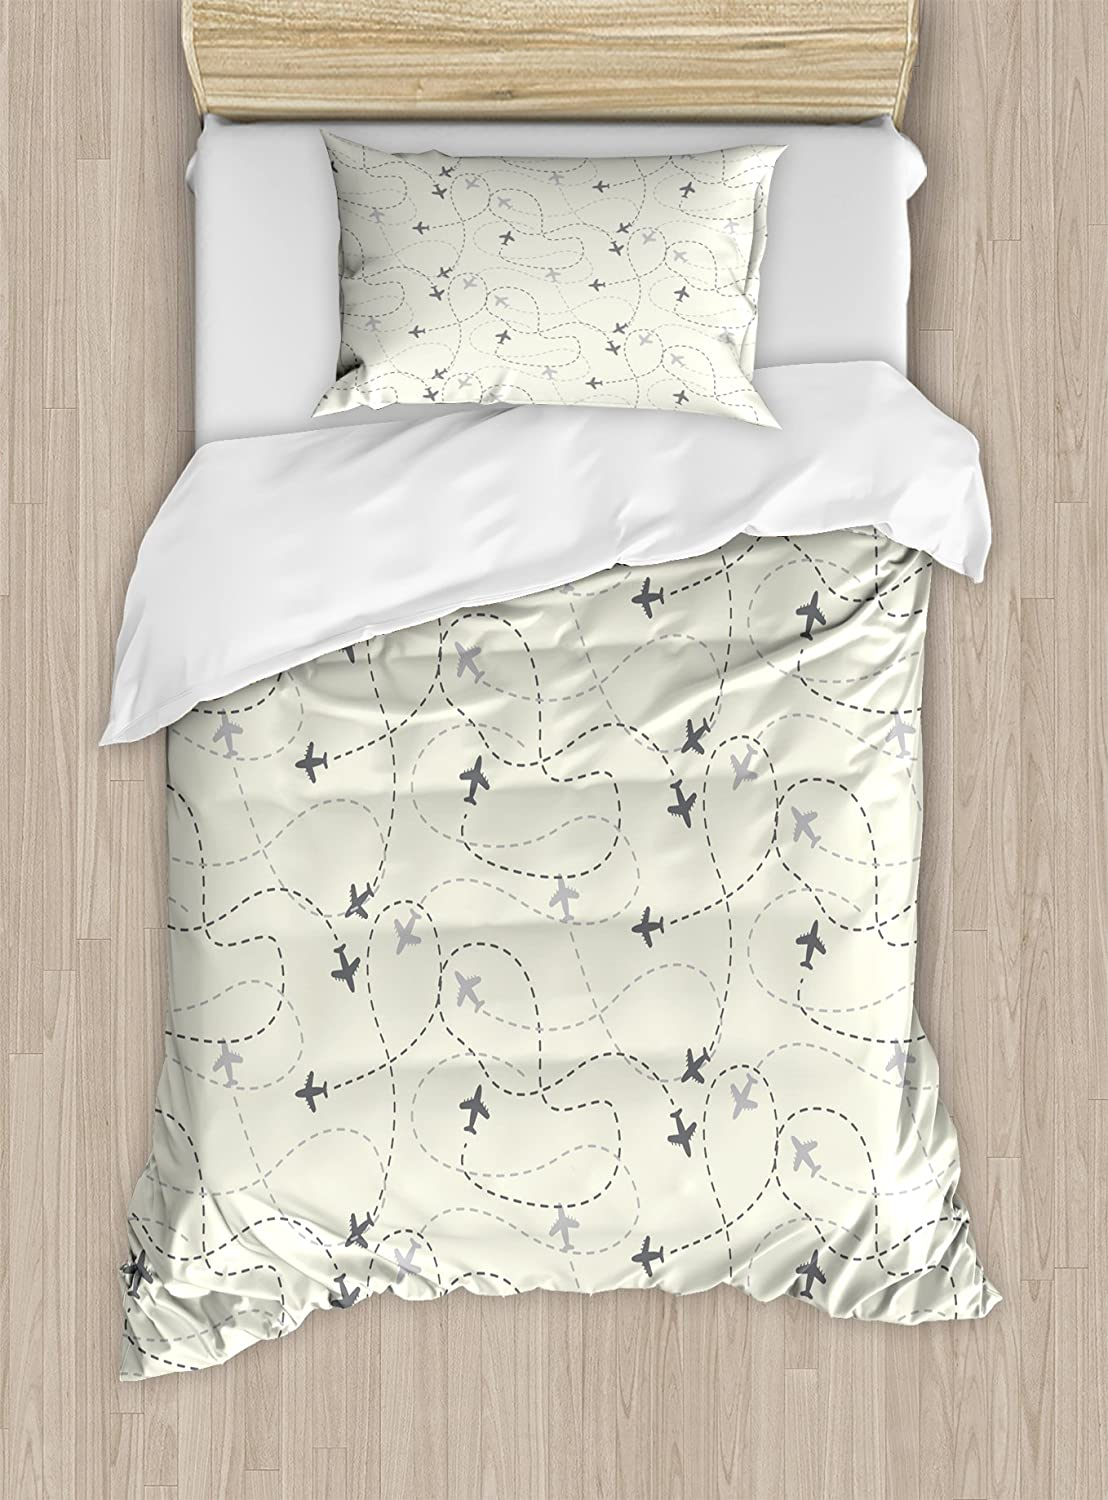 Ambesonne Travel Duvet Cover Set, Airline Route Map Destination Theme Textured Travel Journey Trip Dotted Lines Print, Decorative 3 Piece Bedding Set with 2 Pillow Shams, Twin Size, Beige